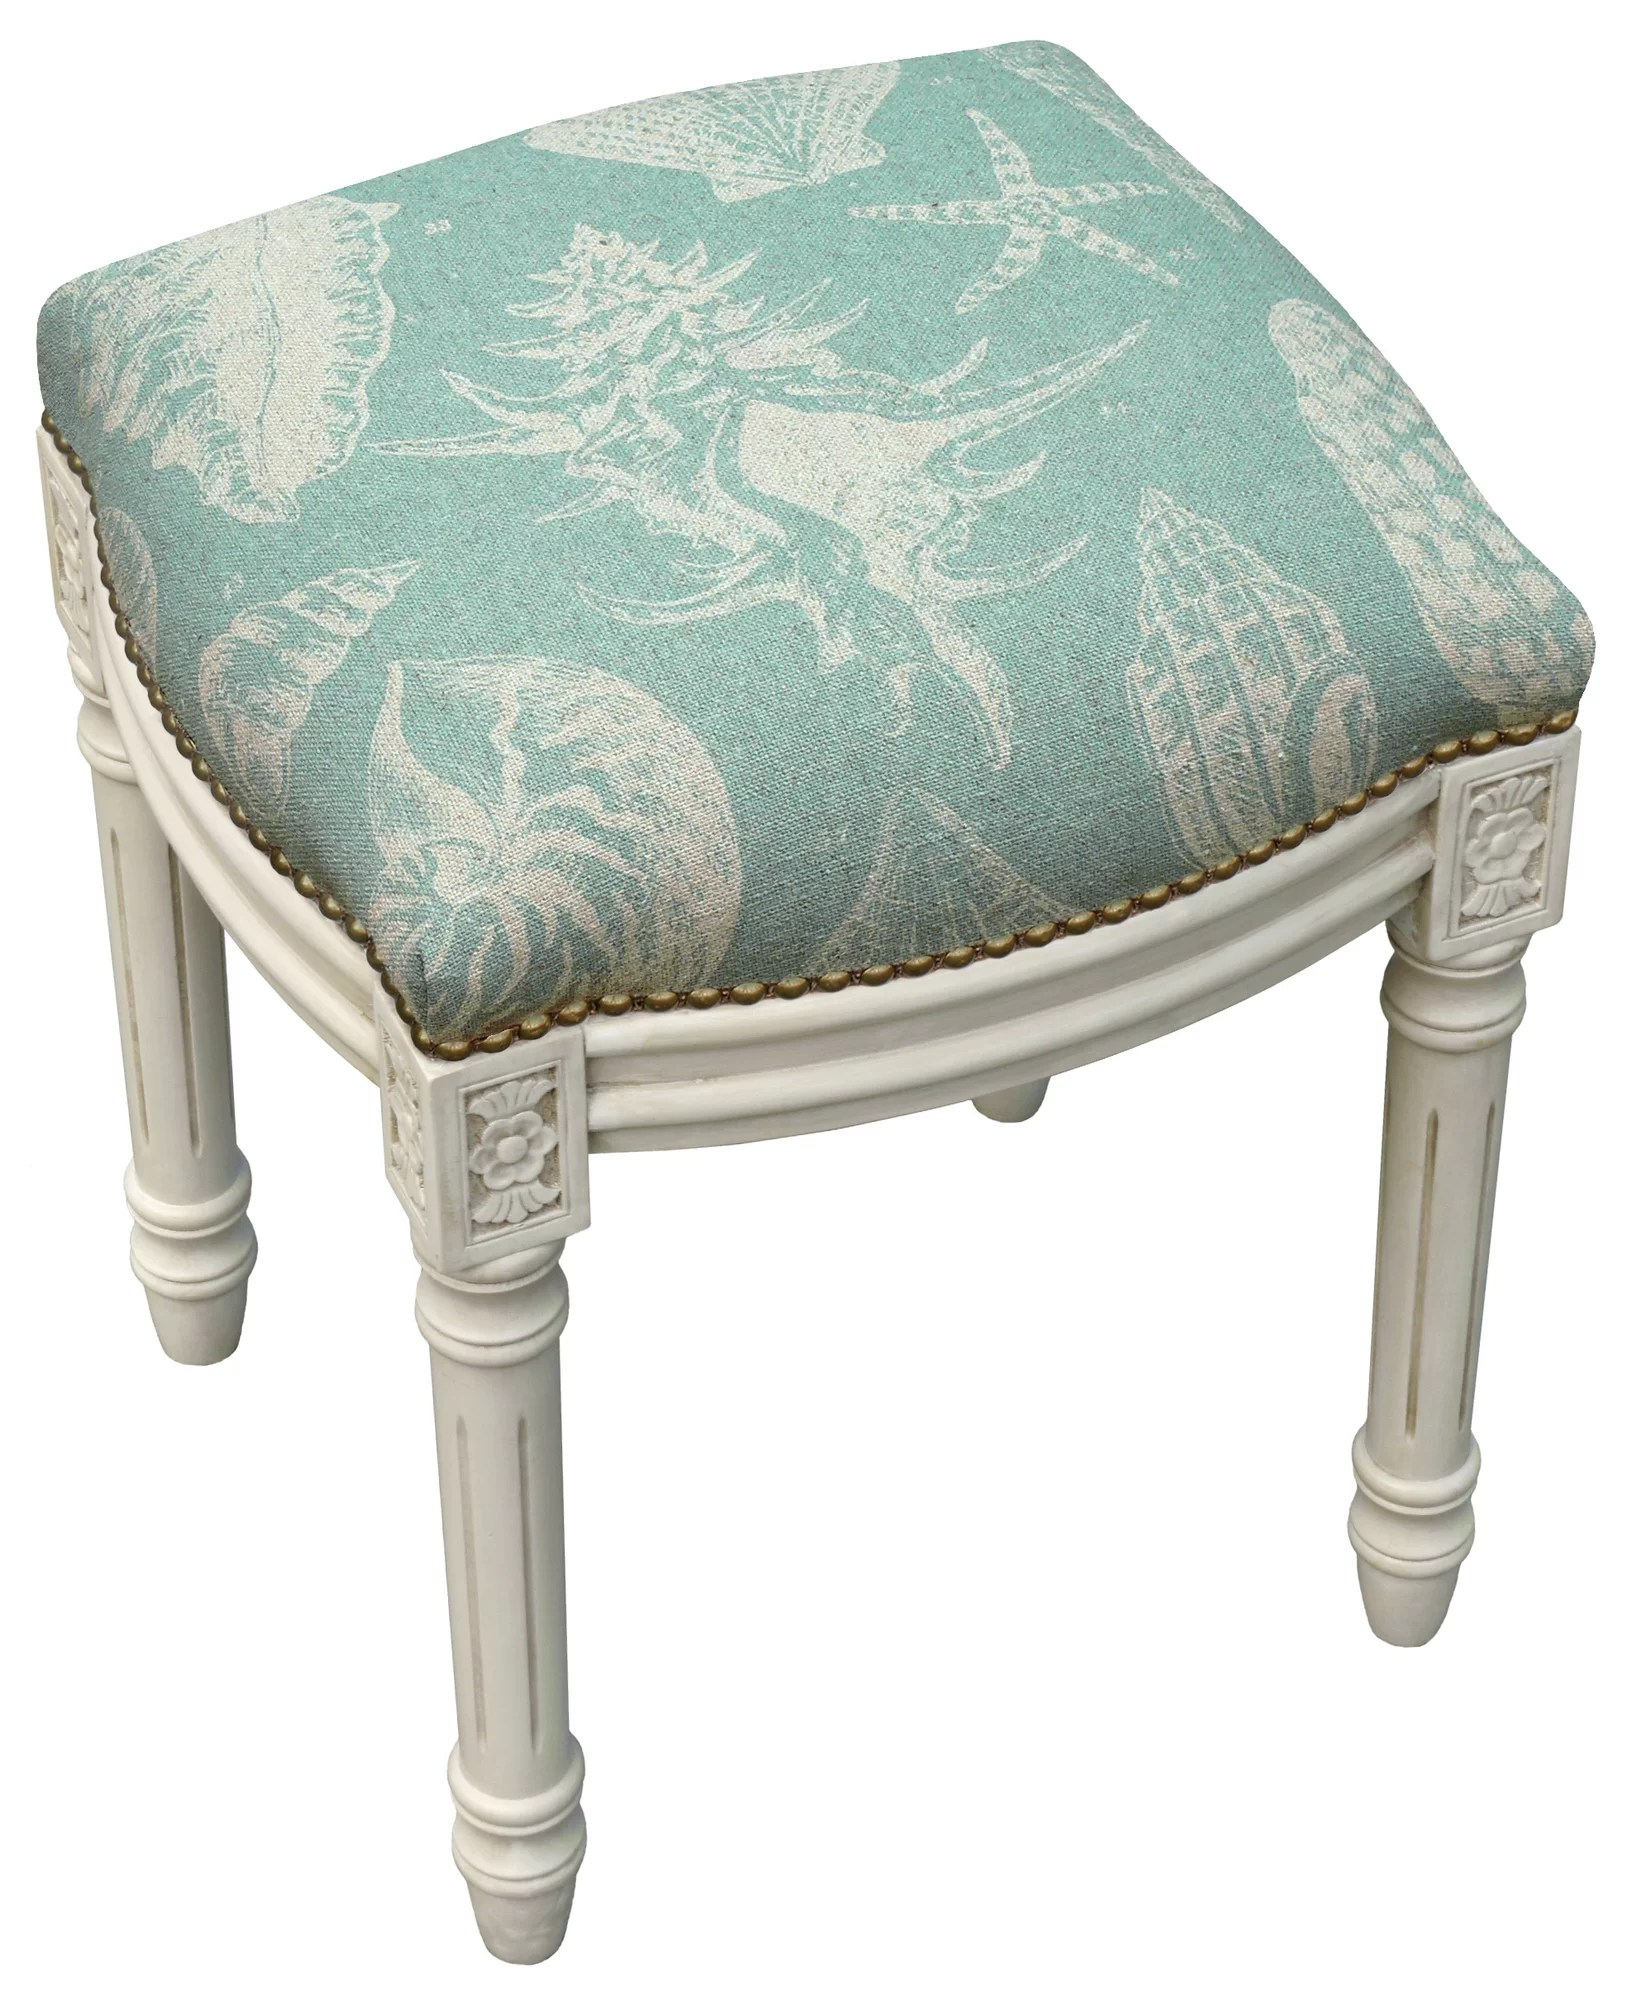 Upholstered Vanity Chair 123 Creations Coastal Seashells Linen Upholstered Vanity